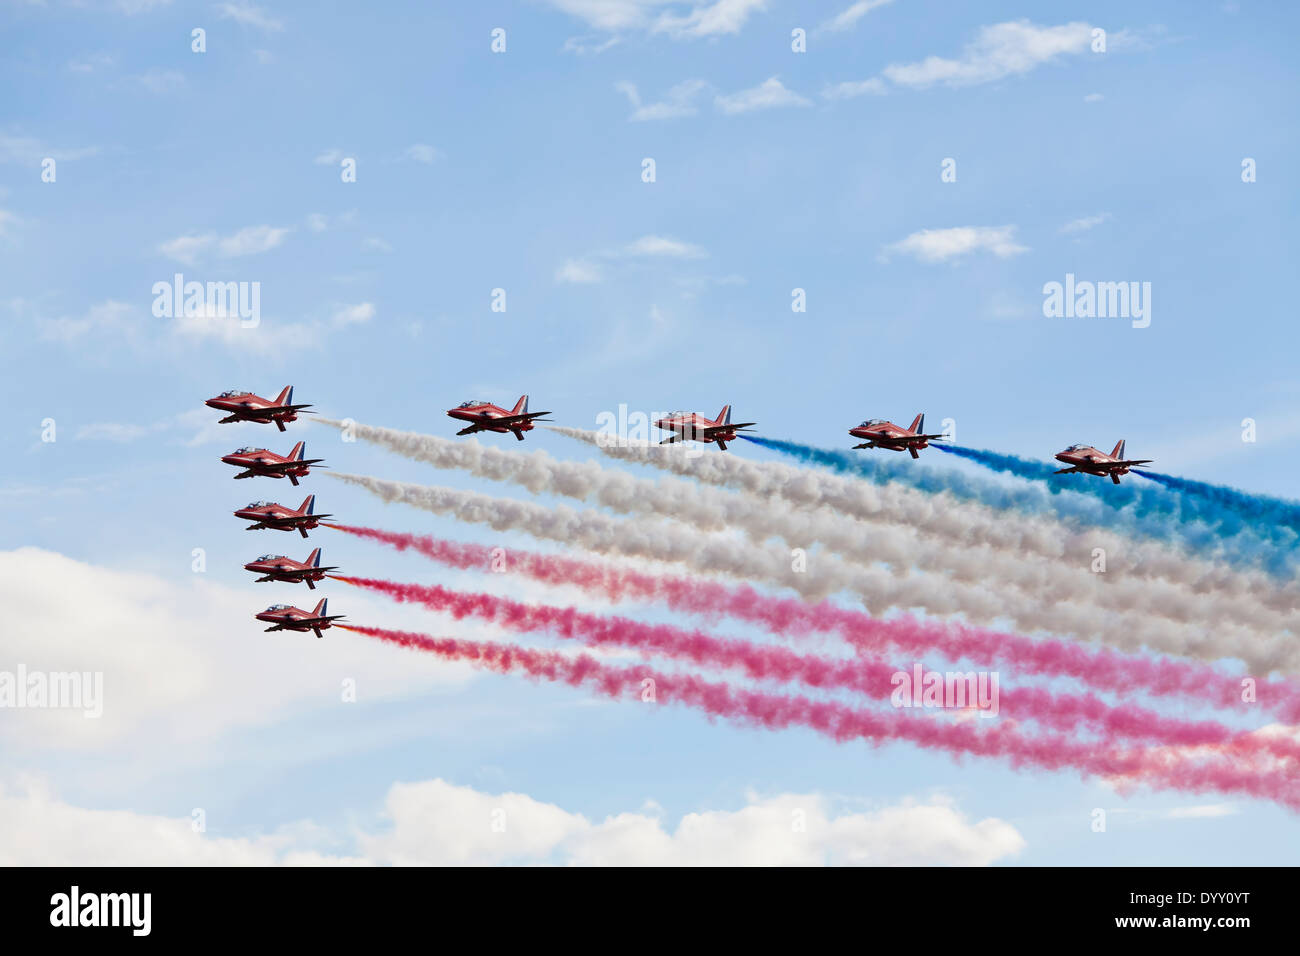 Red Arrows performing a slow flypast with red white and blue smoke. - Stock Image